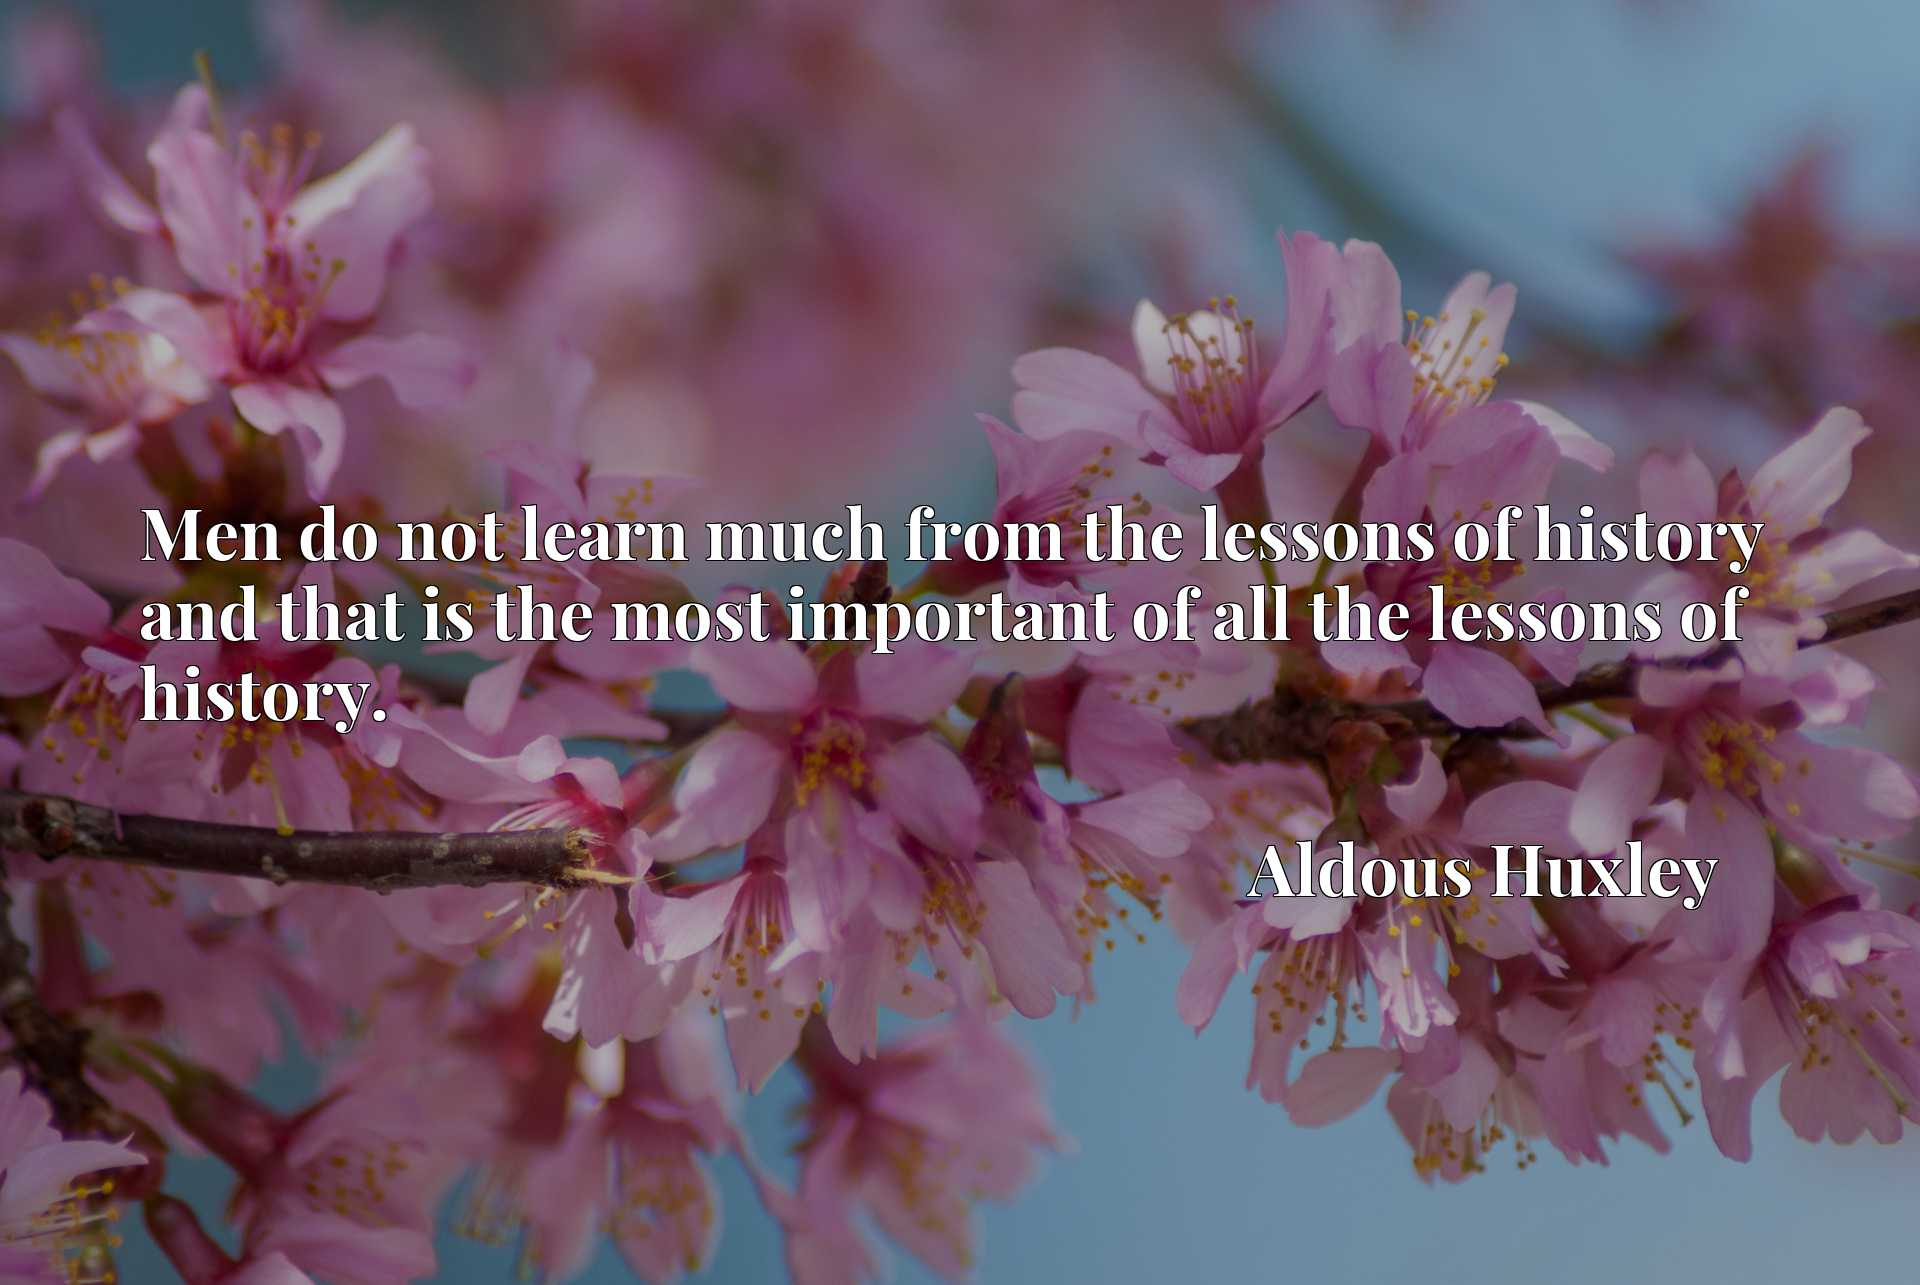 Men do not learn much from the lessons of history and that is the most important of all the lessons of history.